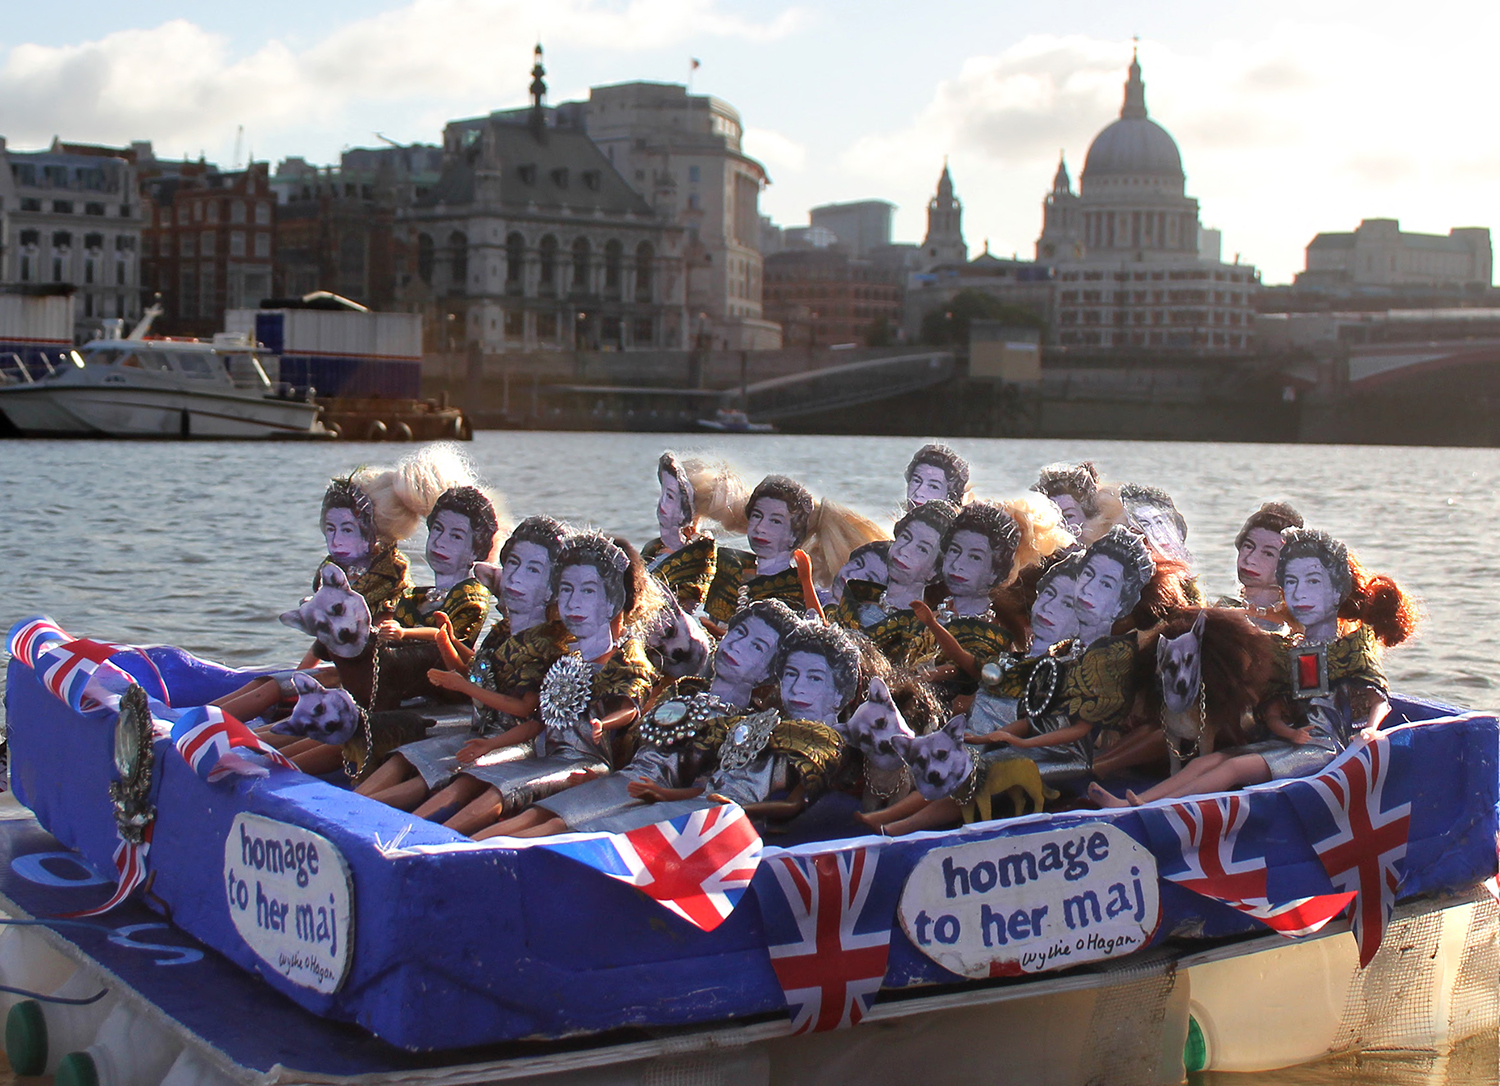 The Royal Raft on the River Thames by St Pauls